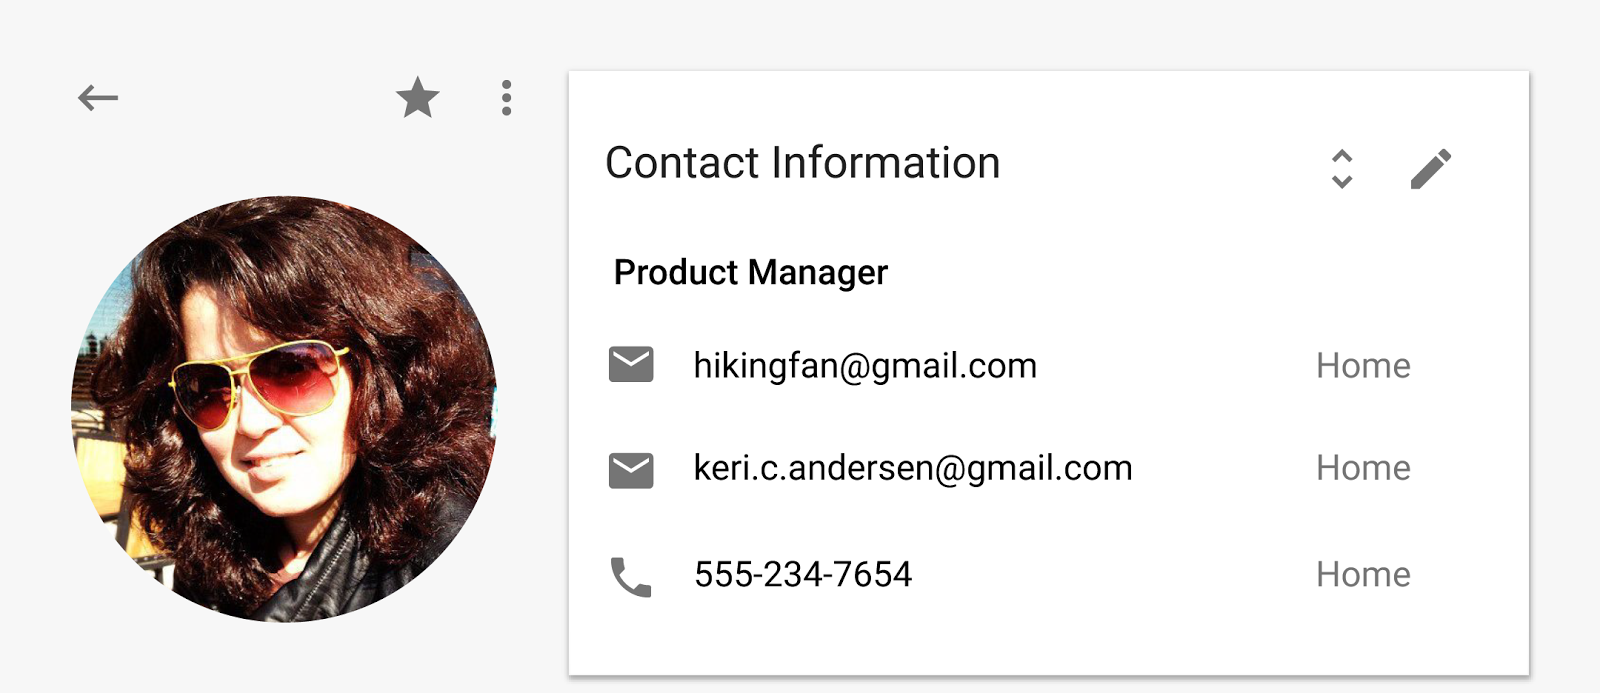 Google Contacts Material Design preview 003